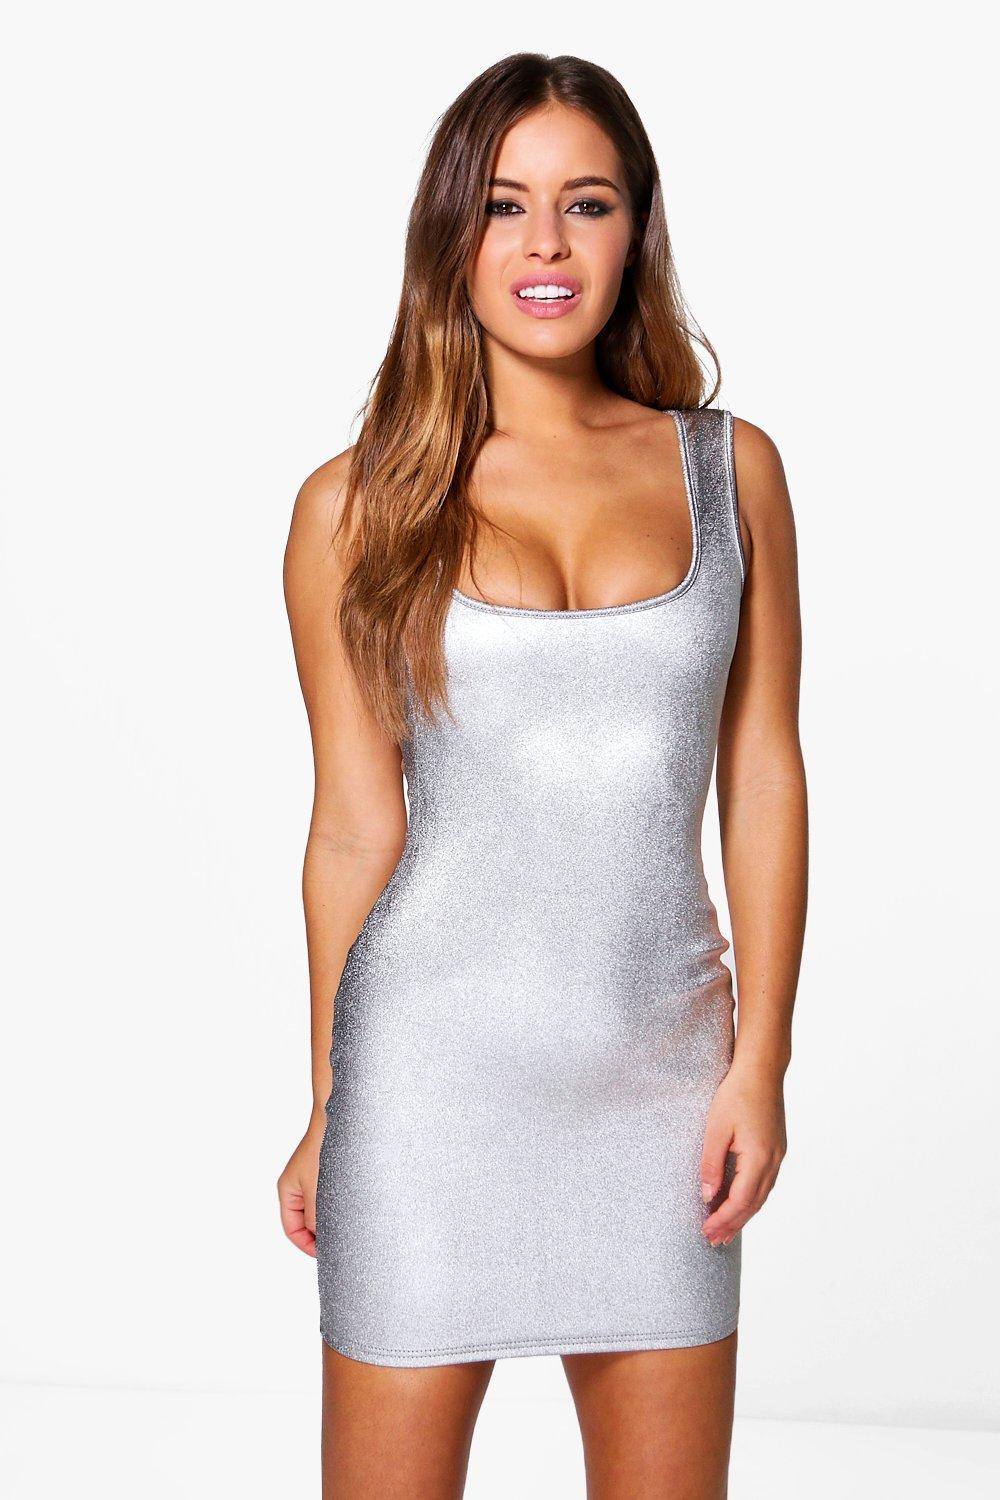 Petite Cassy Square Neck Metallic Bodycon Dress